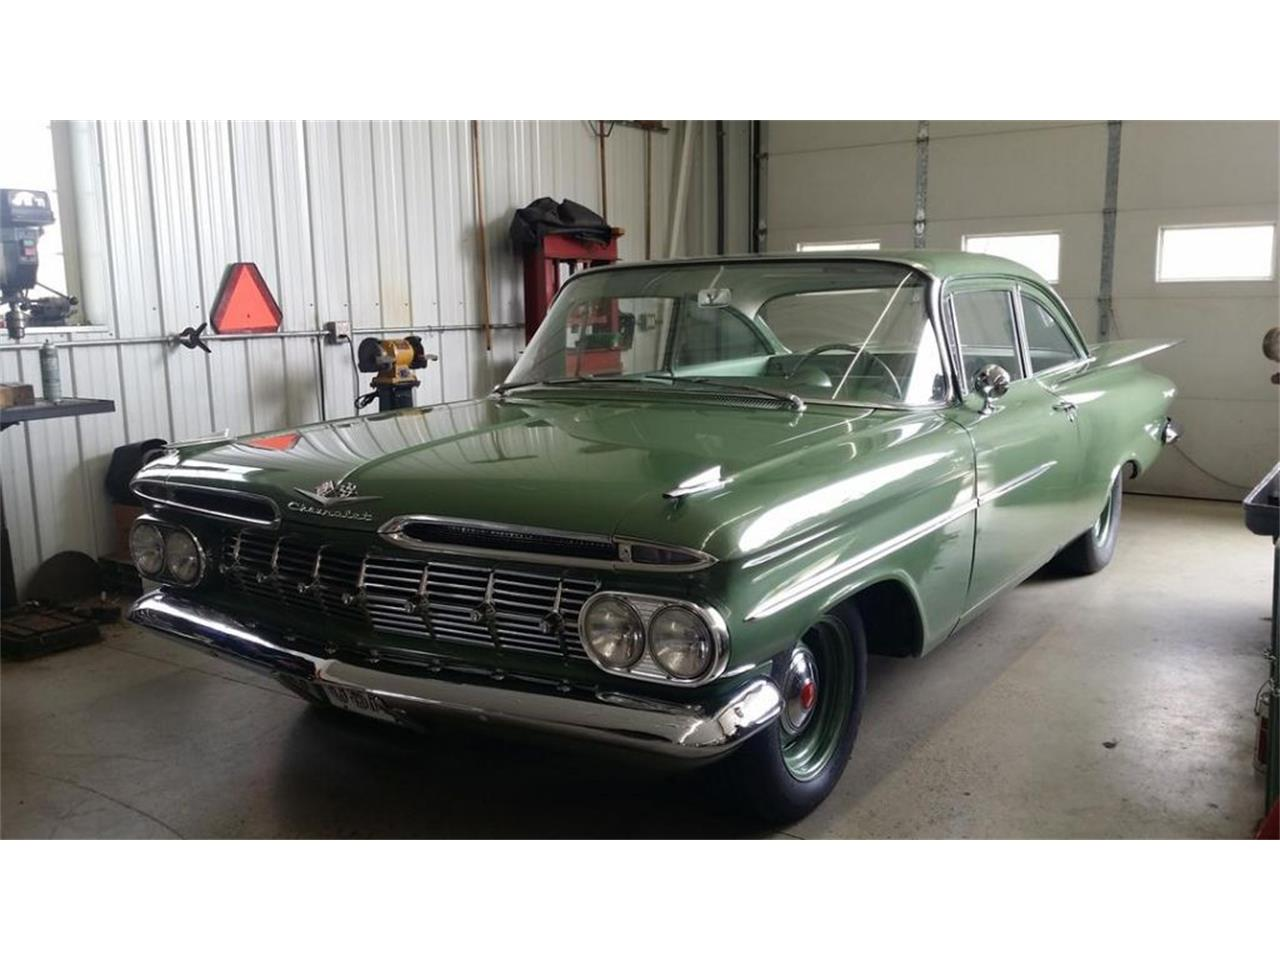 1959 chevrolet biscayne for sale | classiccars | cc-1019378